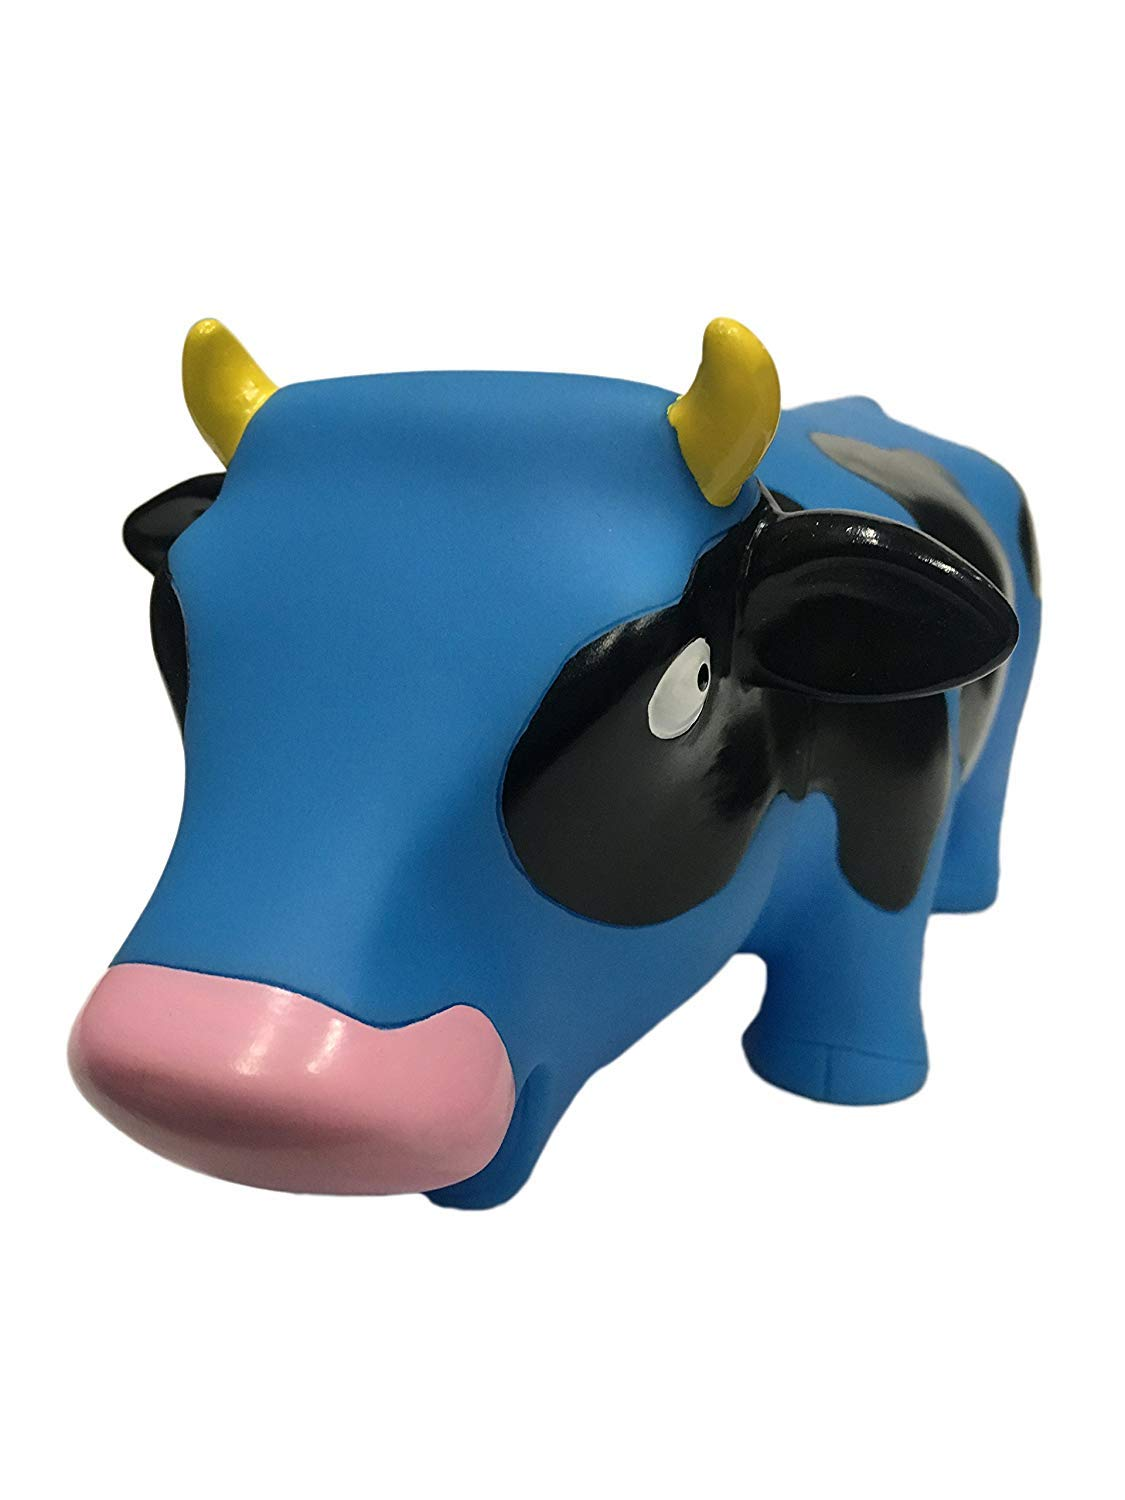 Animolds Squeeze Me and Hear Me Moo Squishy Cow Sensory Toys Party Supplies Pack (6 Pack) by Animolds (Image #5)